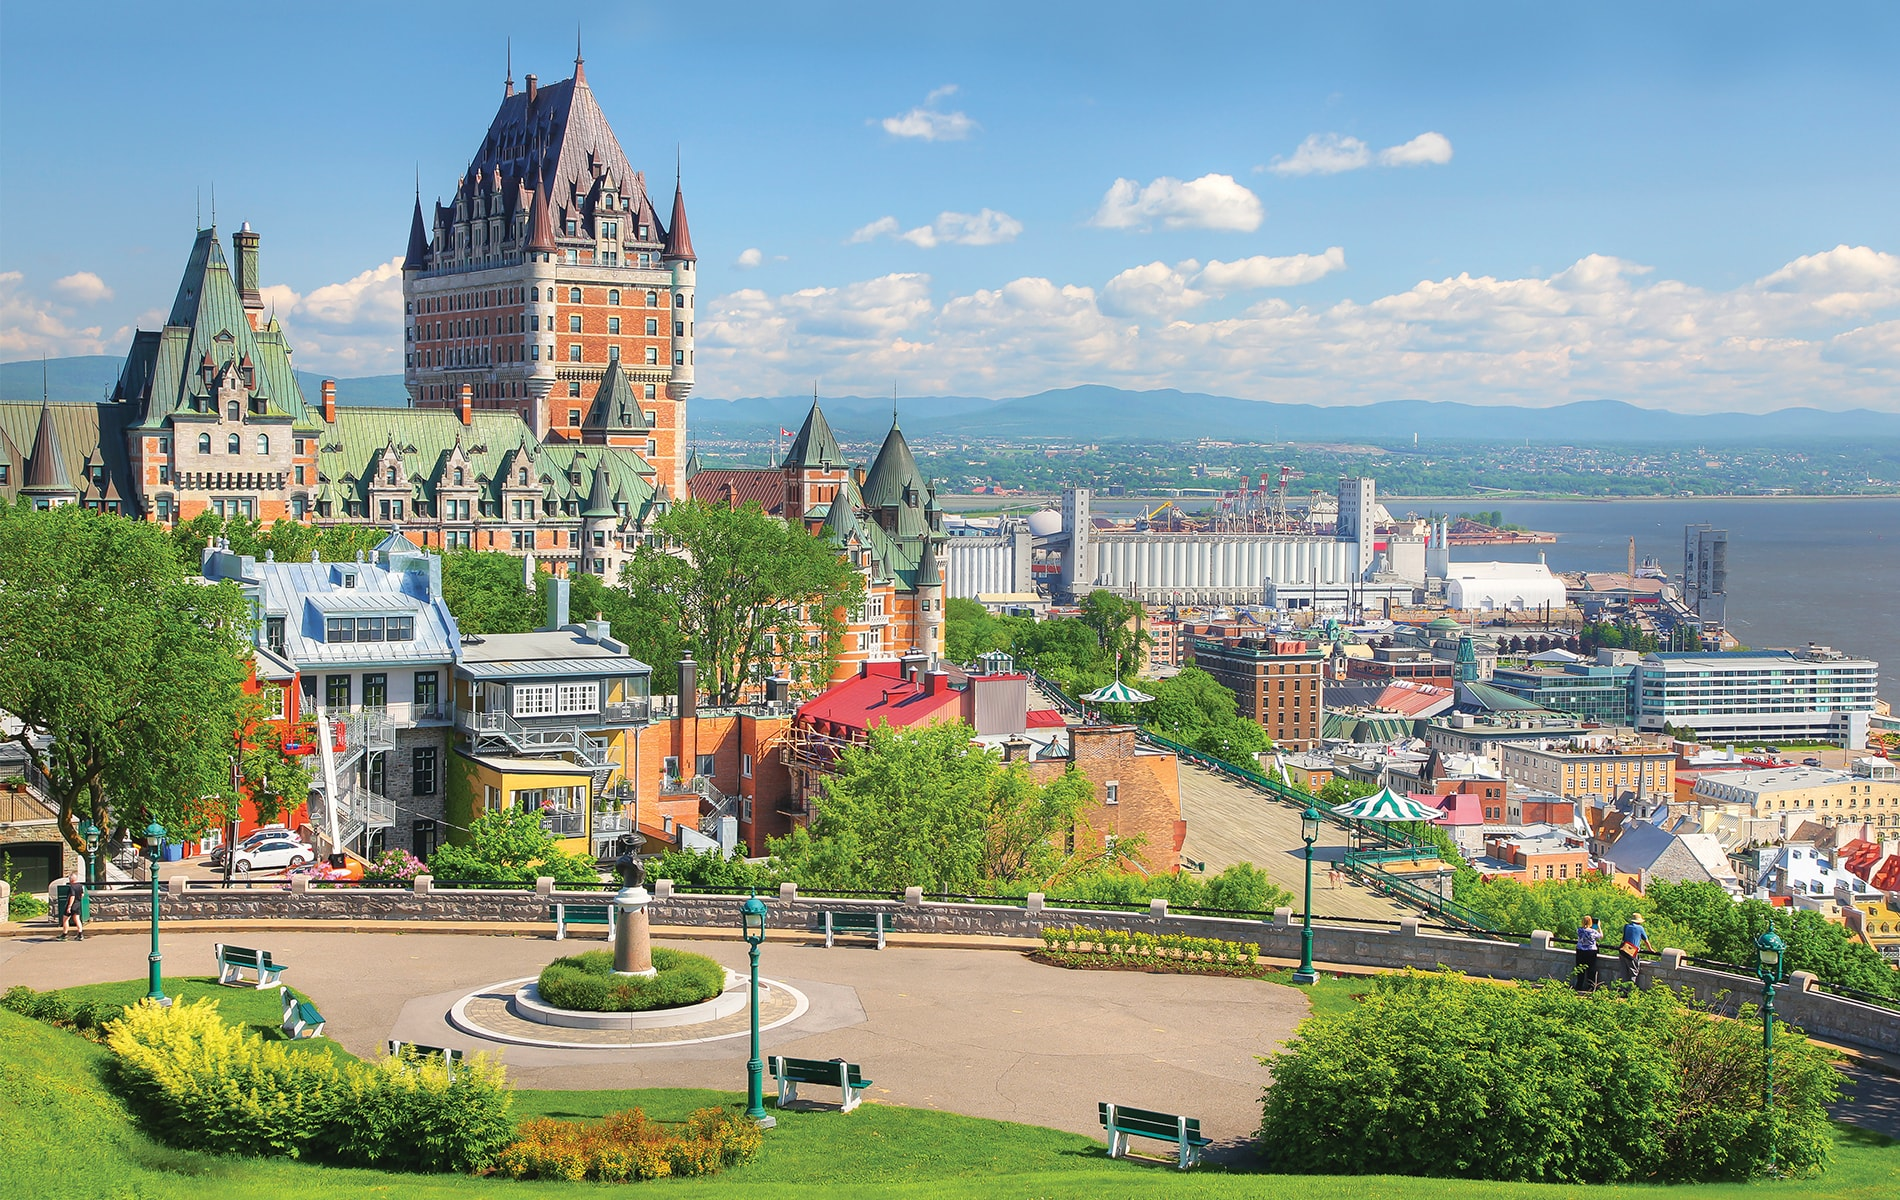 Take a stroll along the promenade for a glorious view of Château Frontenac in Old Québec City.